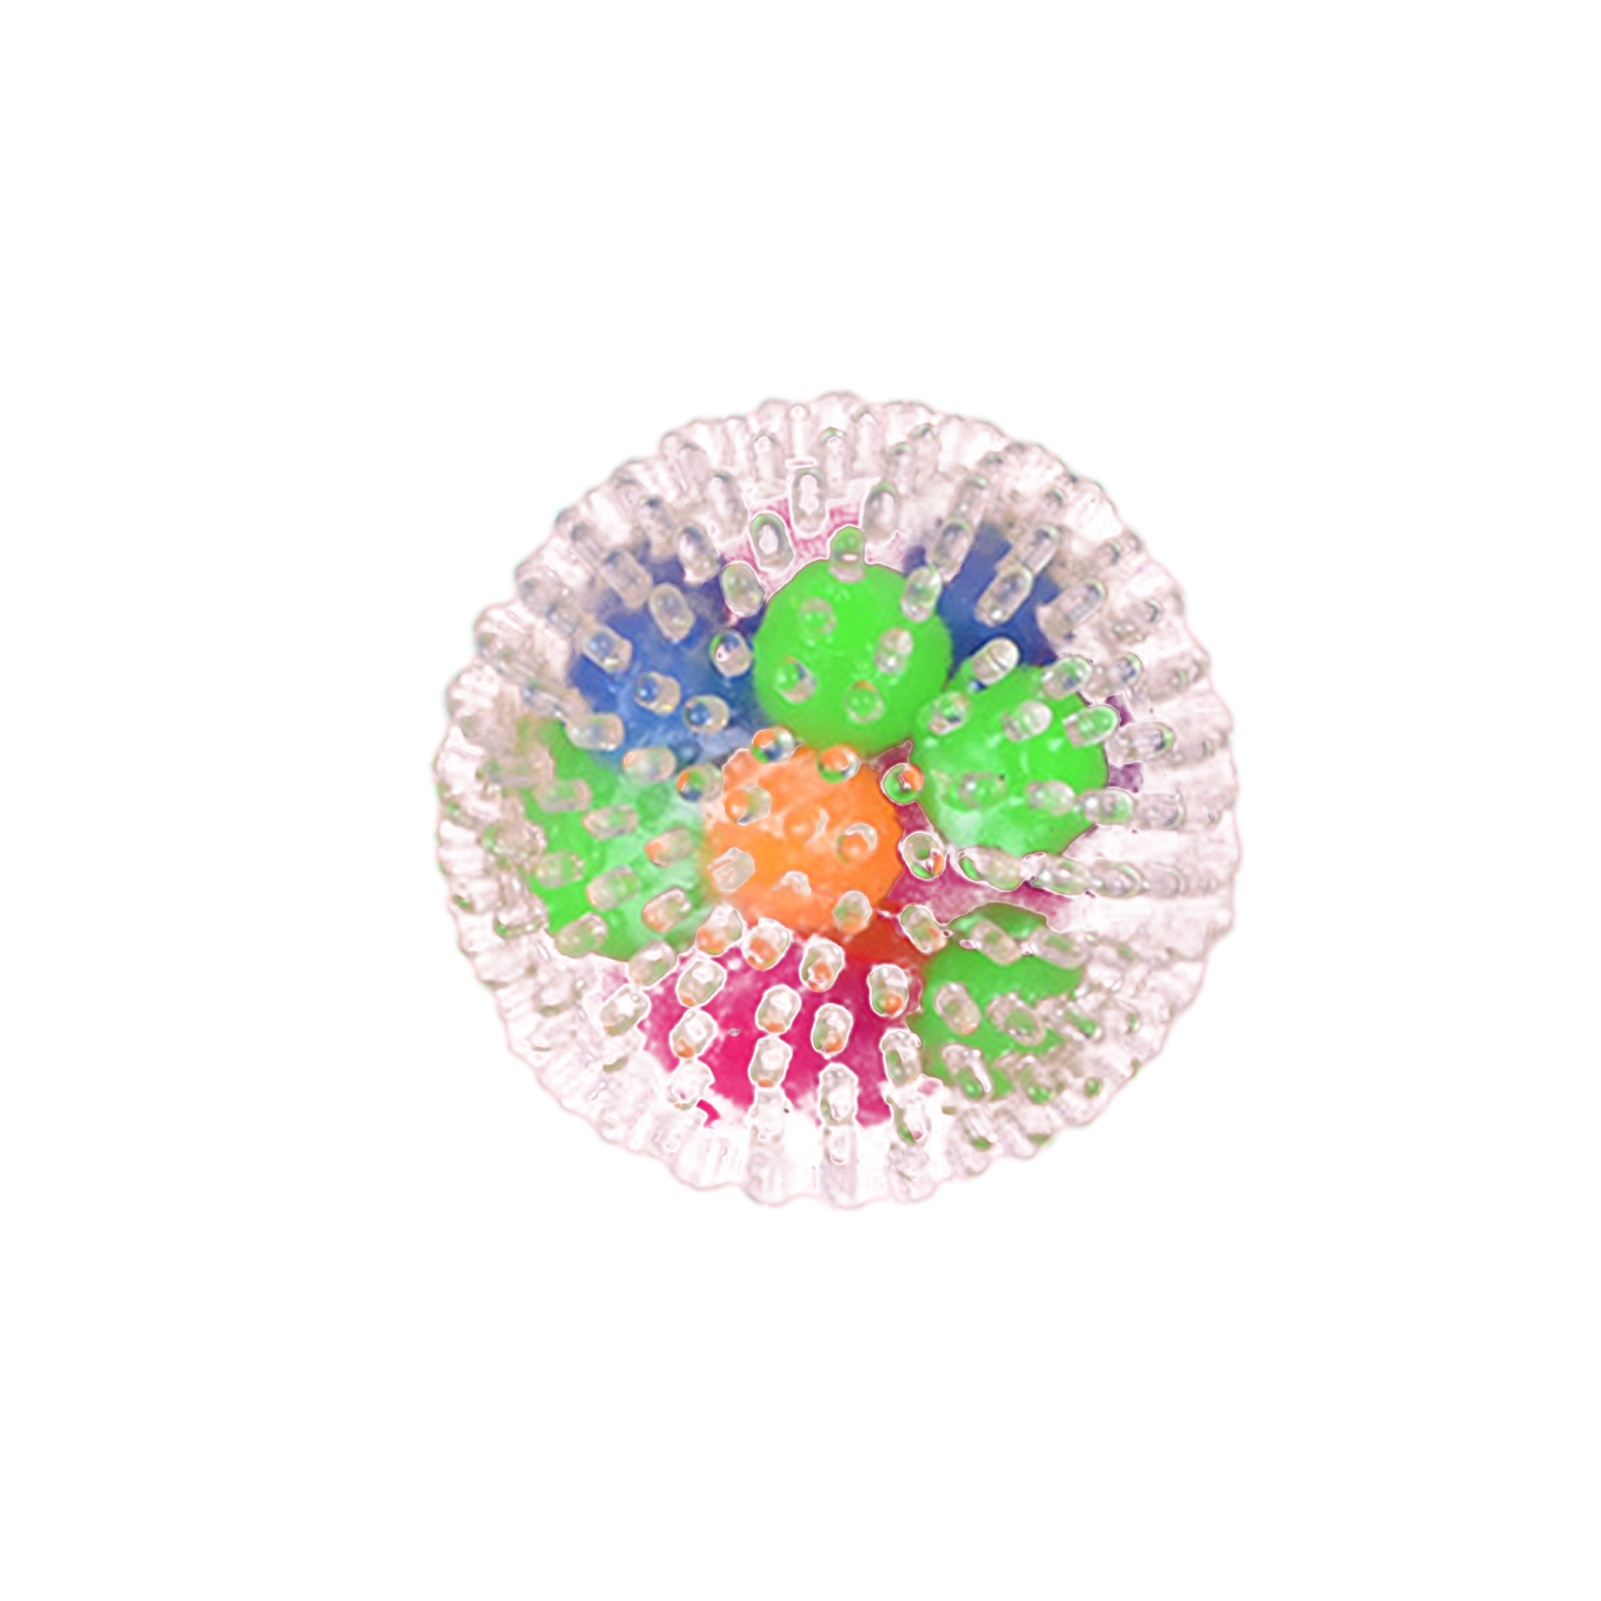 Toys Grape-Ball-Toy Stressbal Relief-Fidget Squeeze Antistress-Sensory Anxiety img2